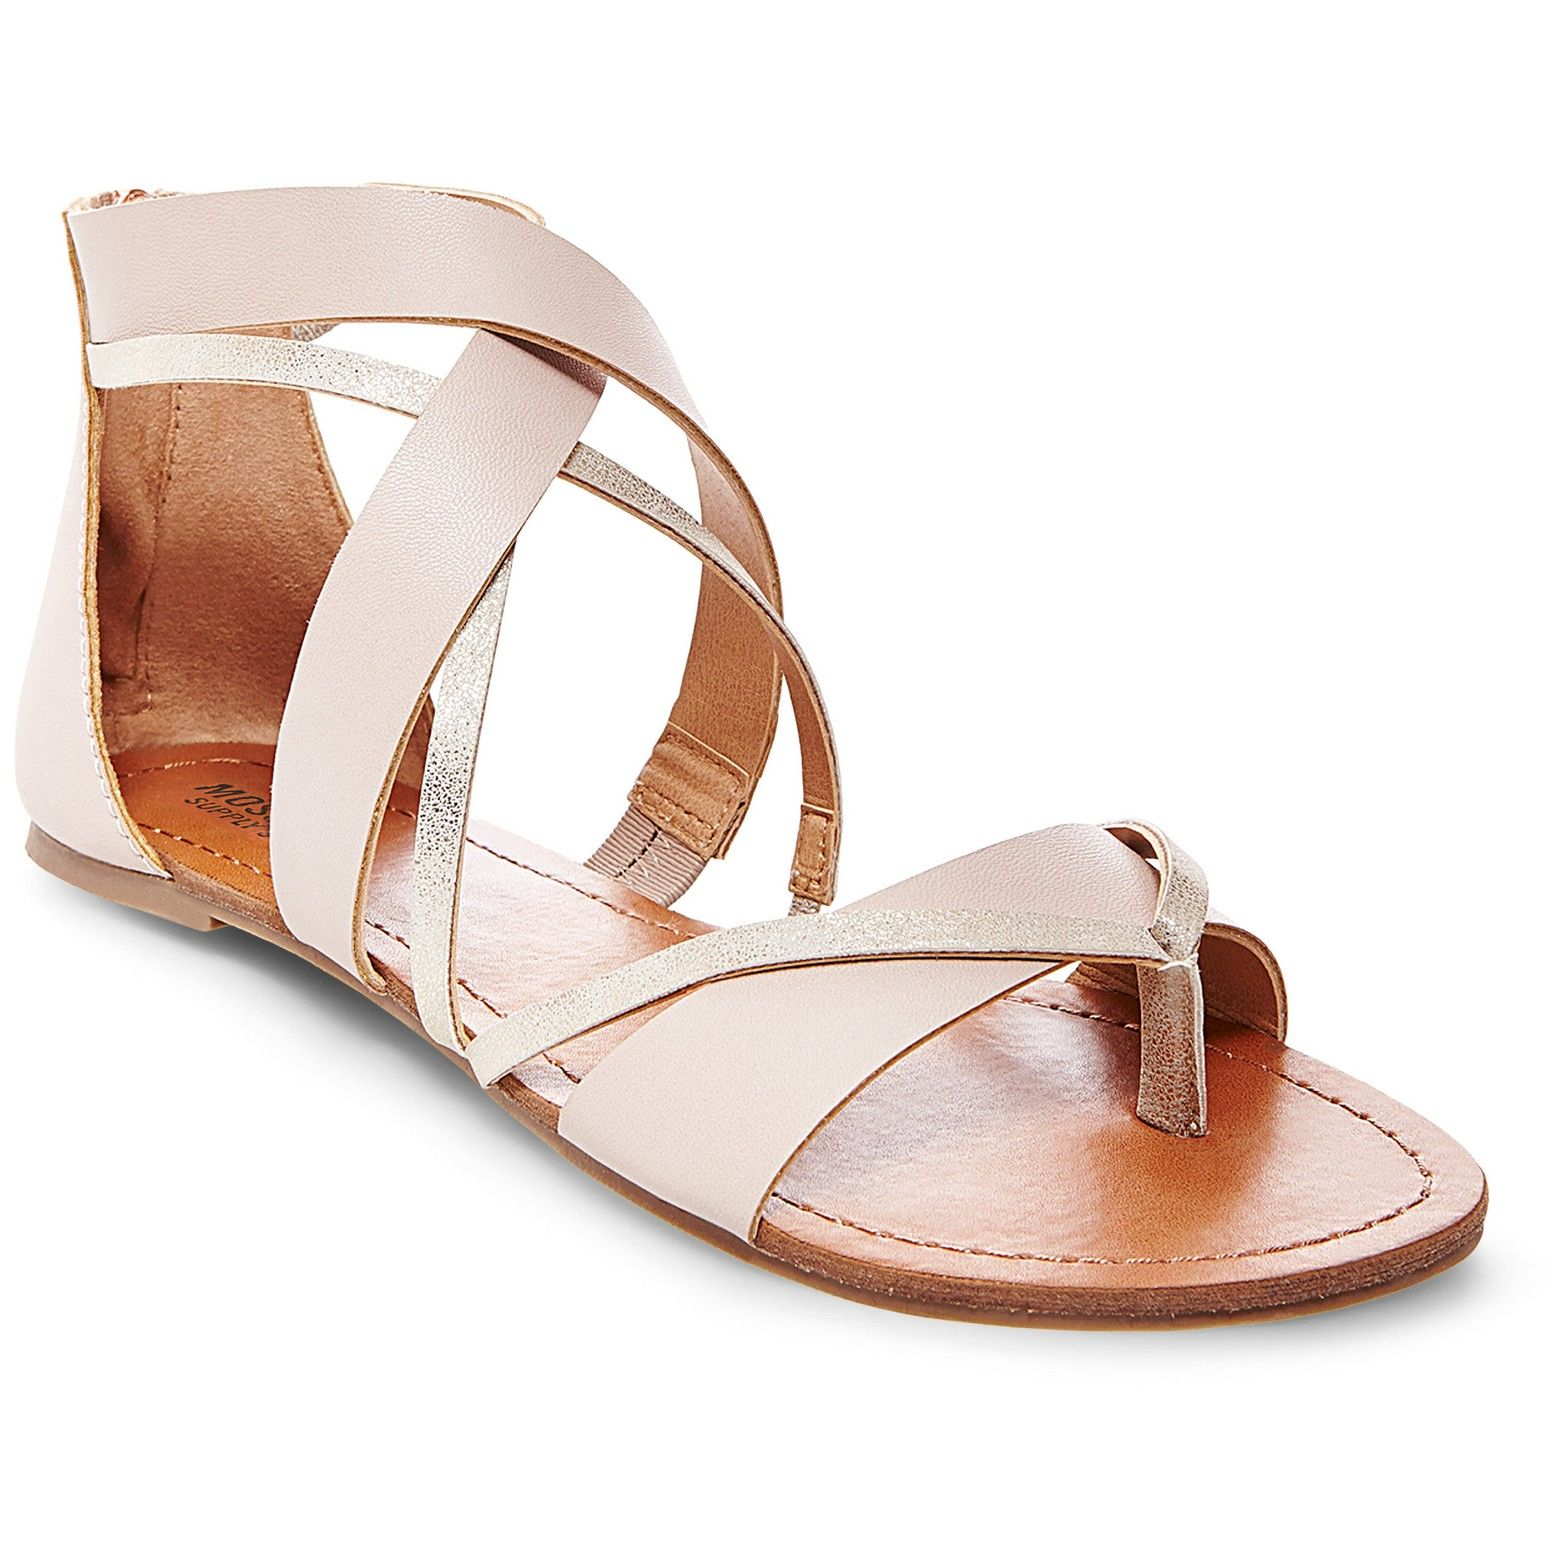 1f8c5e2bf4ad Flat no heel  br • Thong sandal with criss-cross detail br • Elastic ankle  insert   full-length back zipper br • Textured 100% rubber  outsole br  br Breezy ...